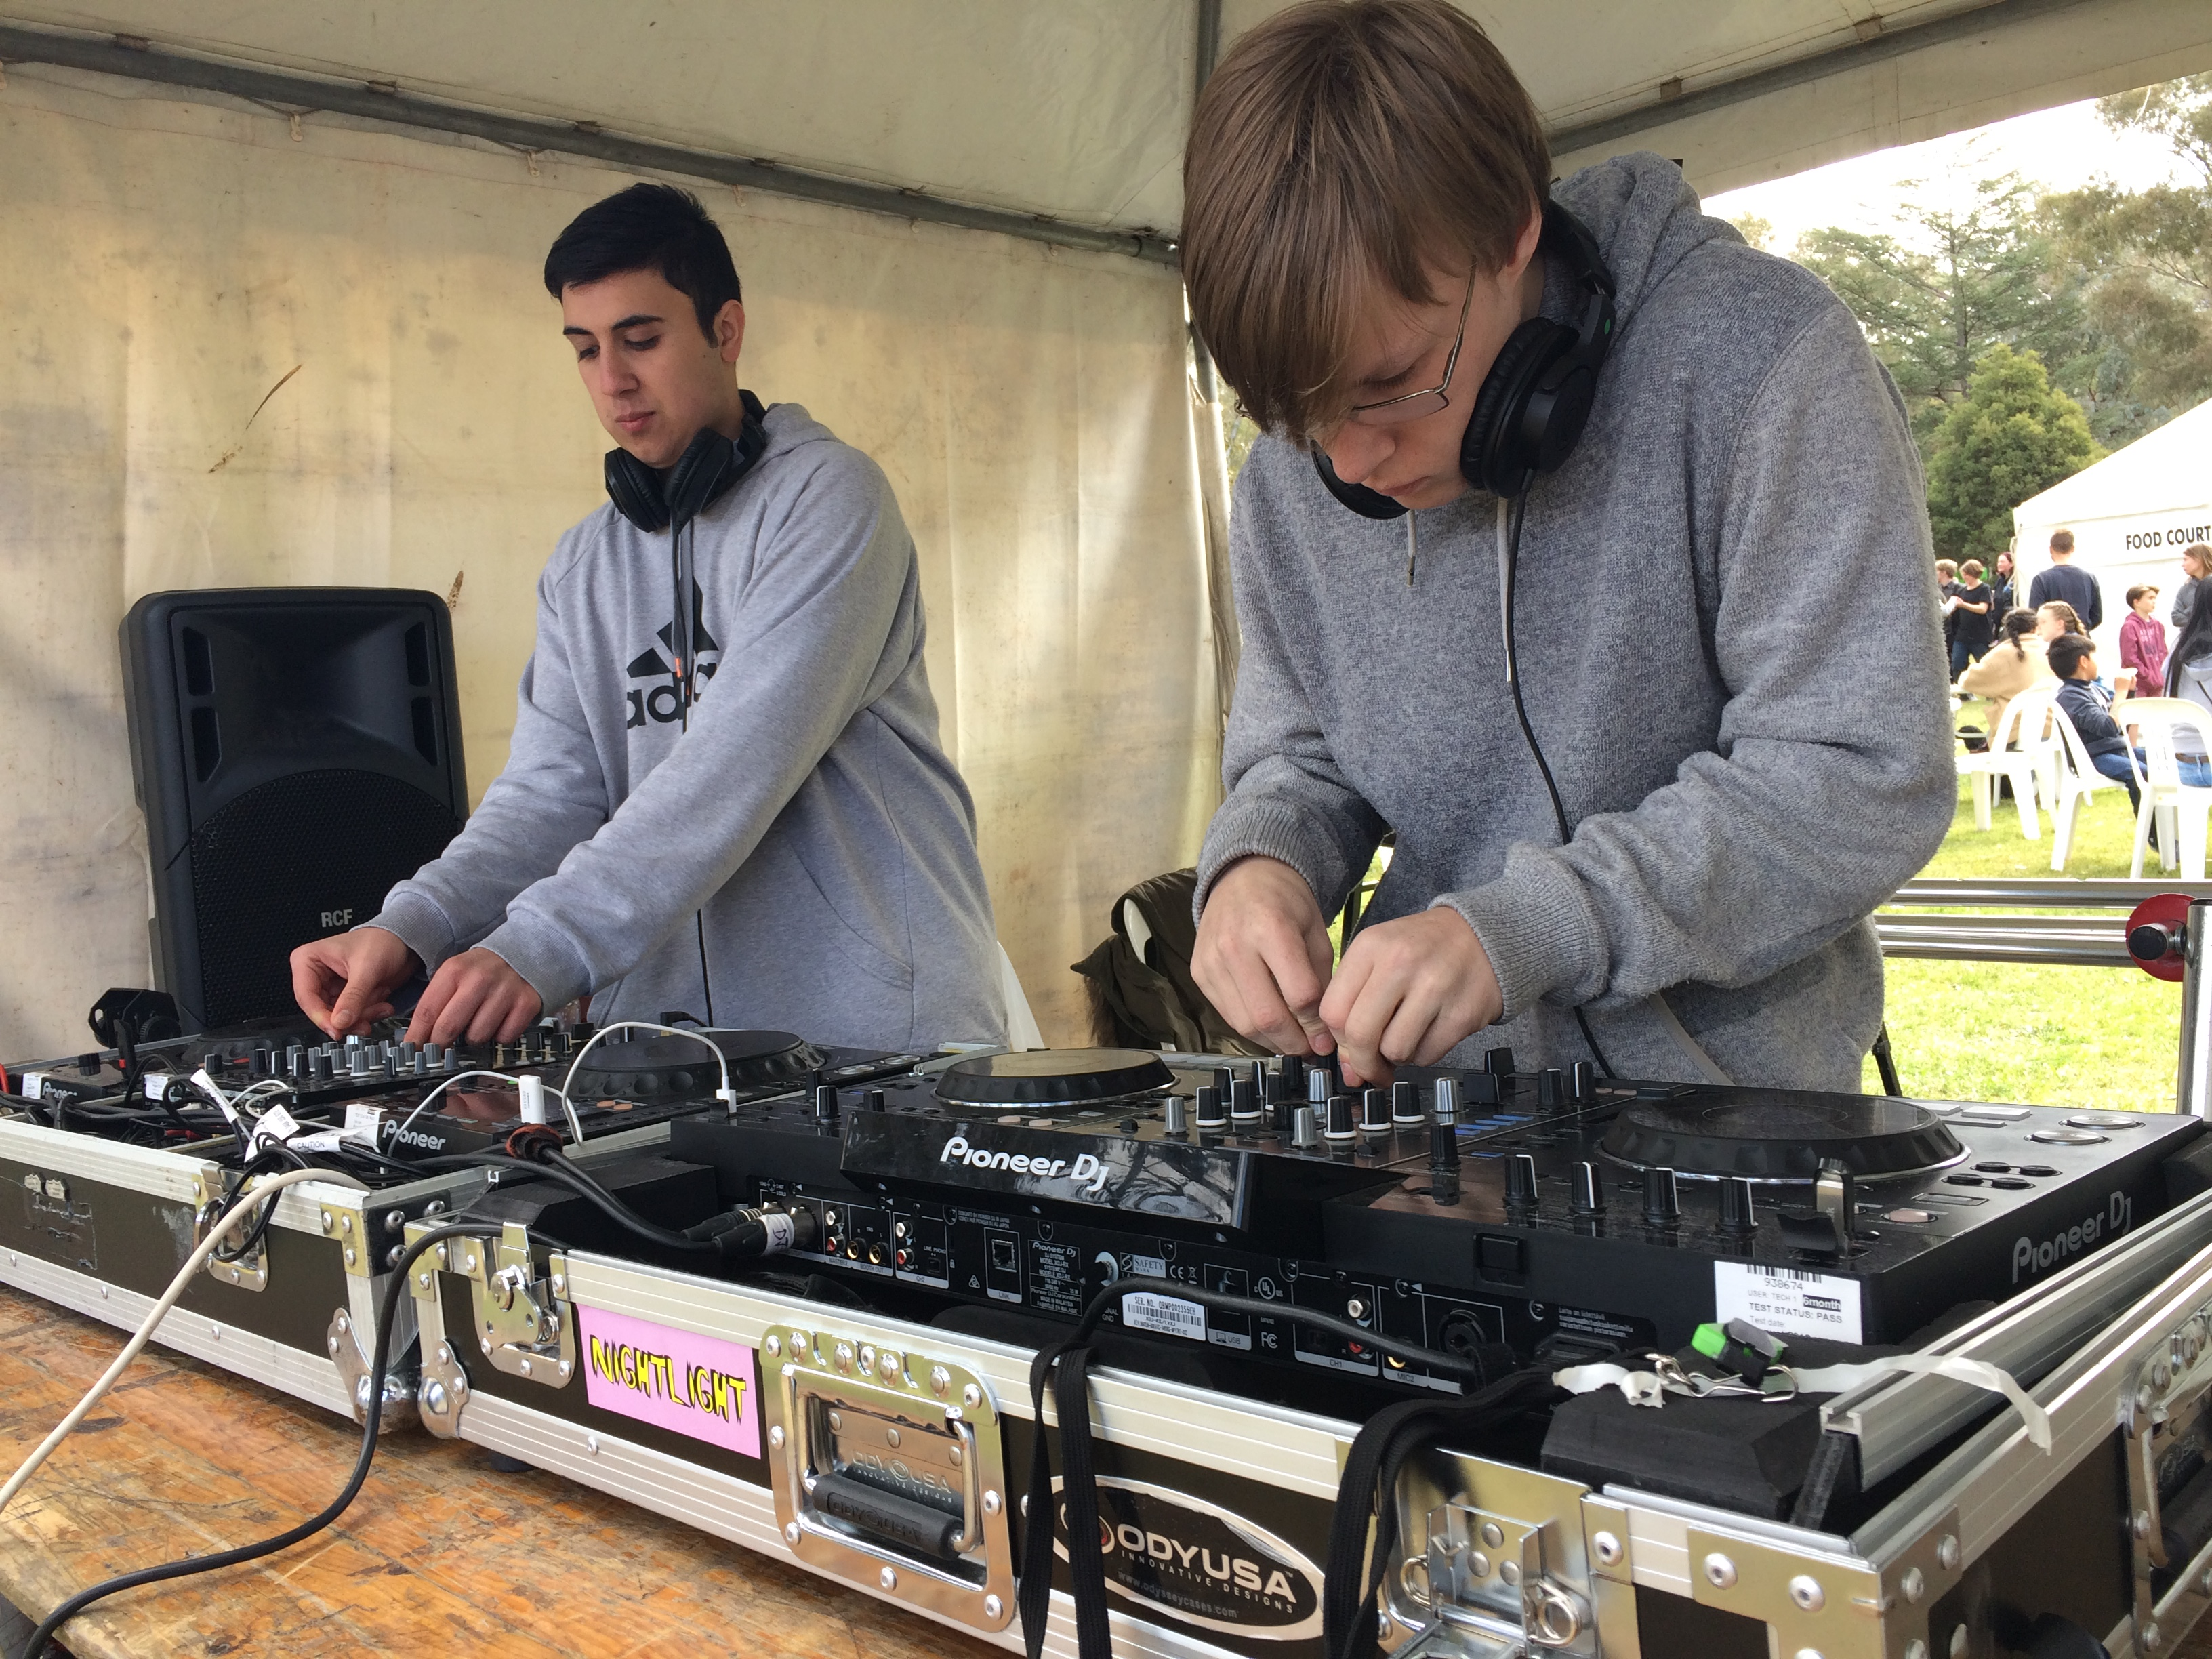 Jump behind the decks and DJ some of Council's events for some real life DJ experience